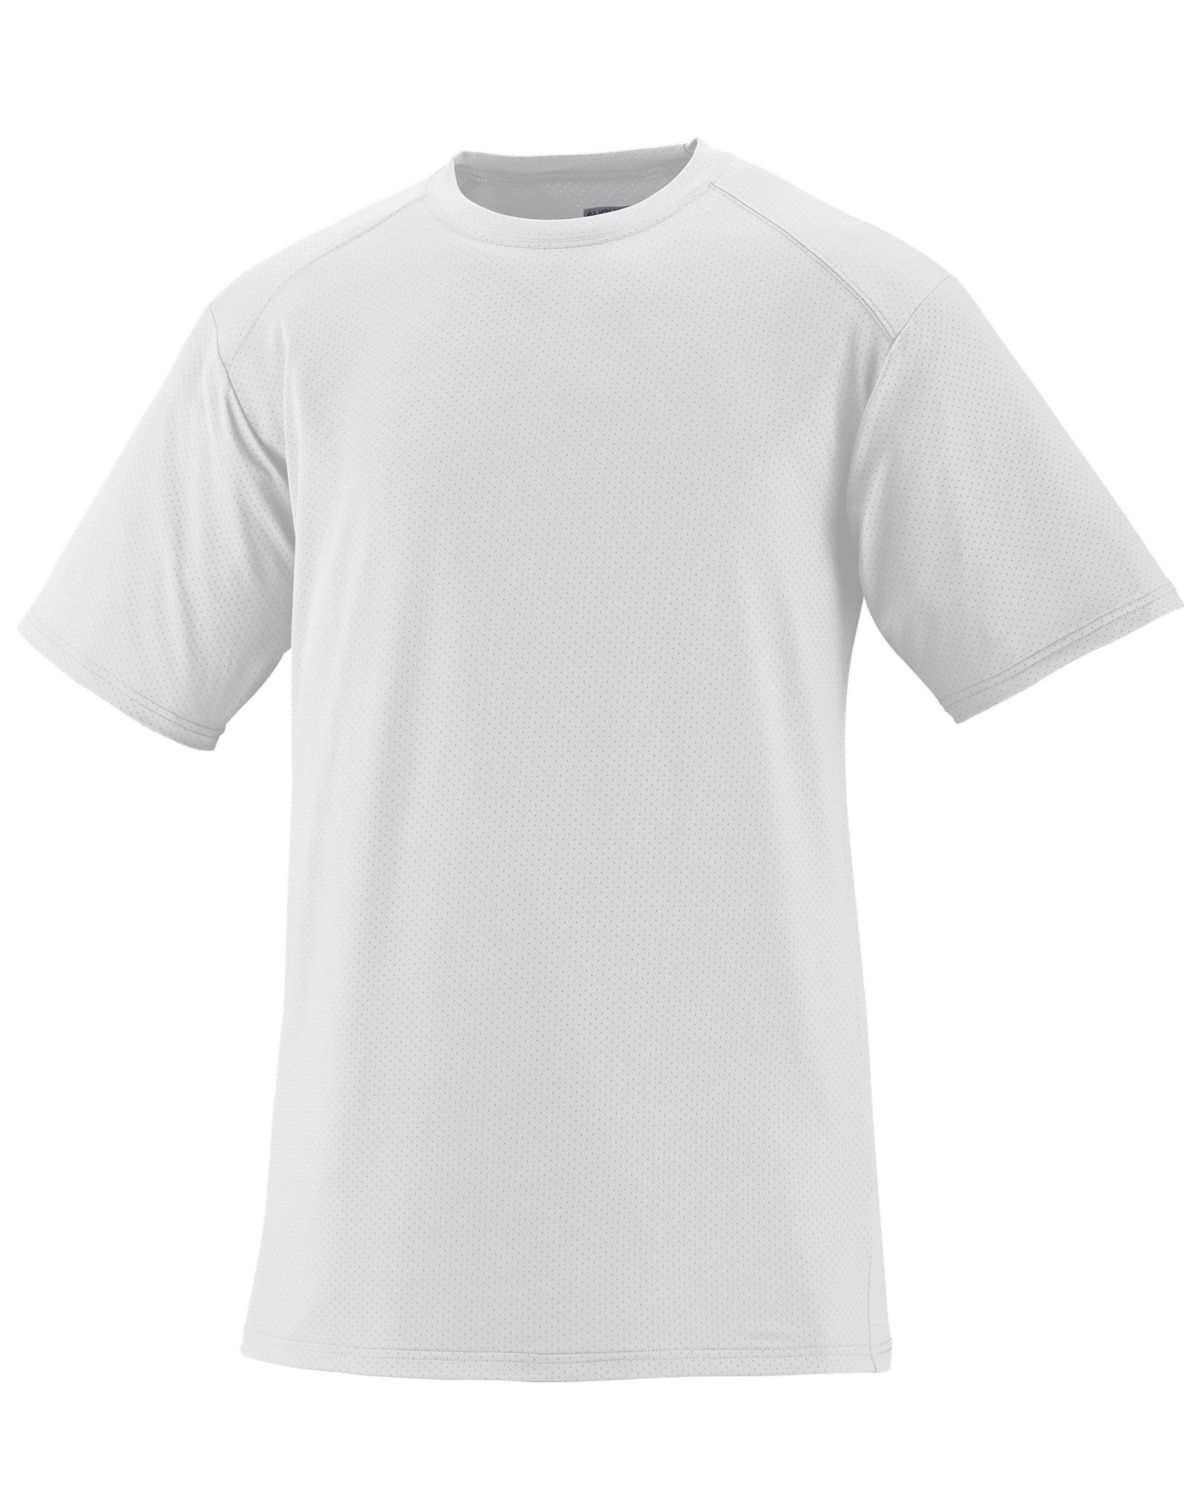 Adult Exa Short-Sleeve Crew